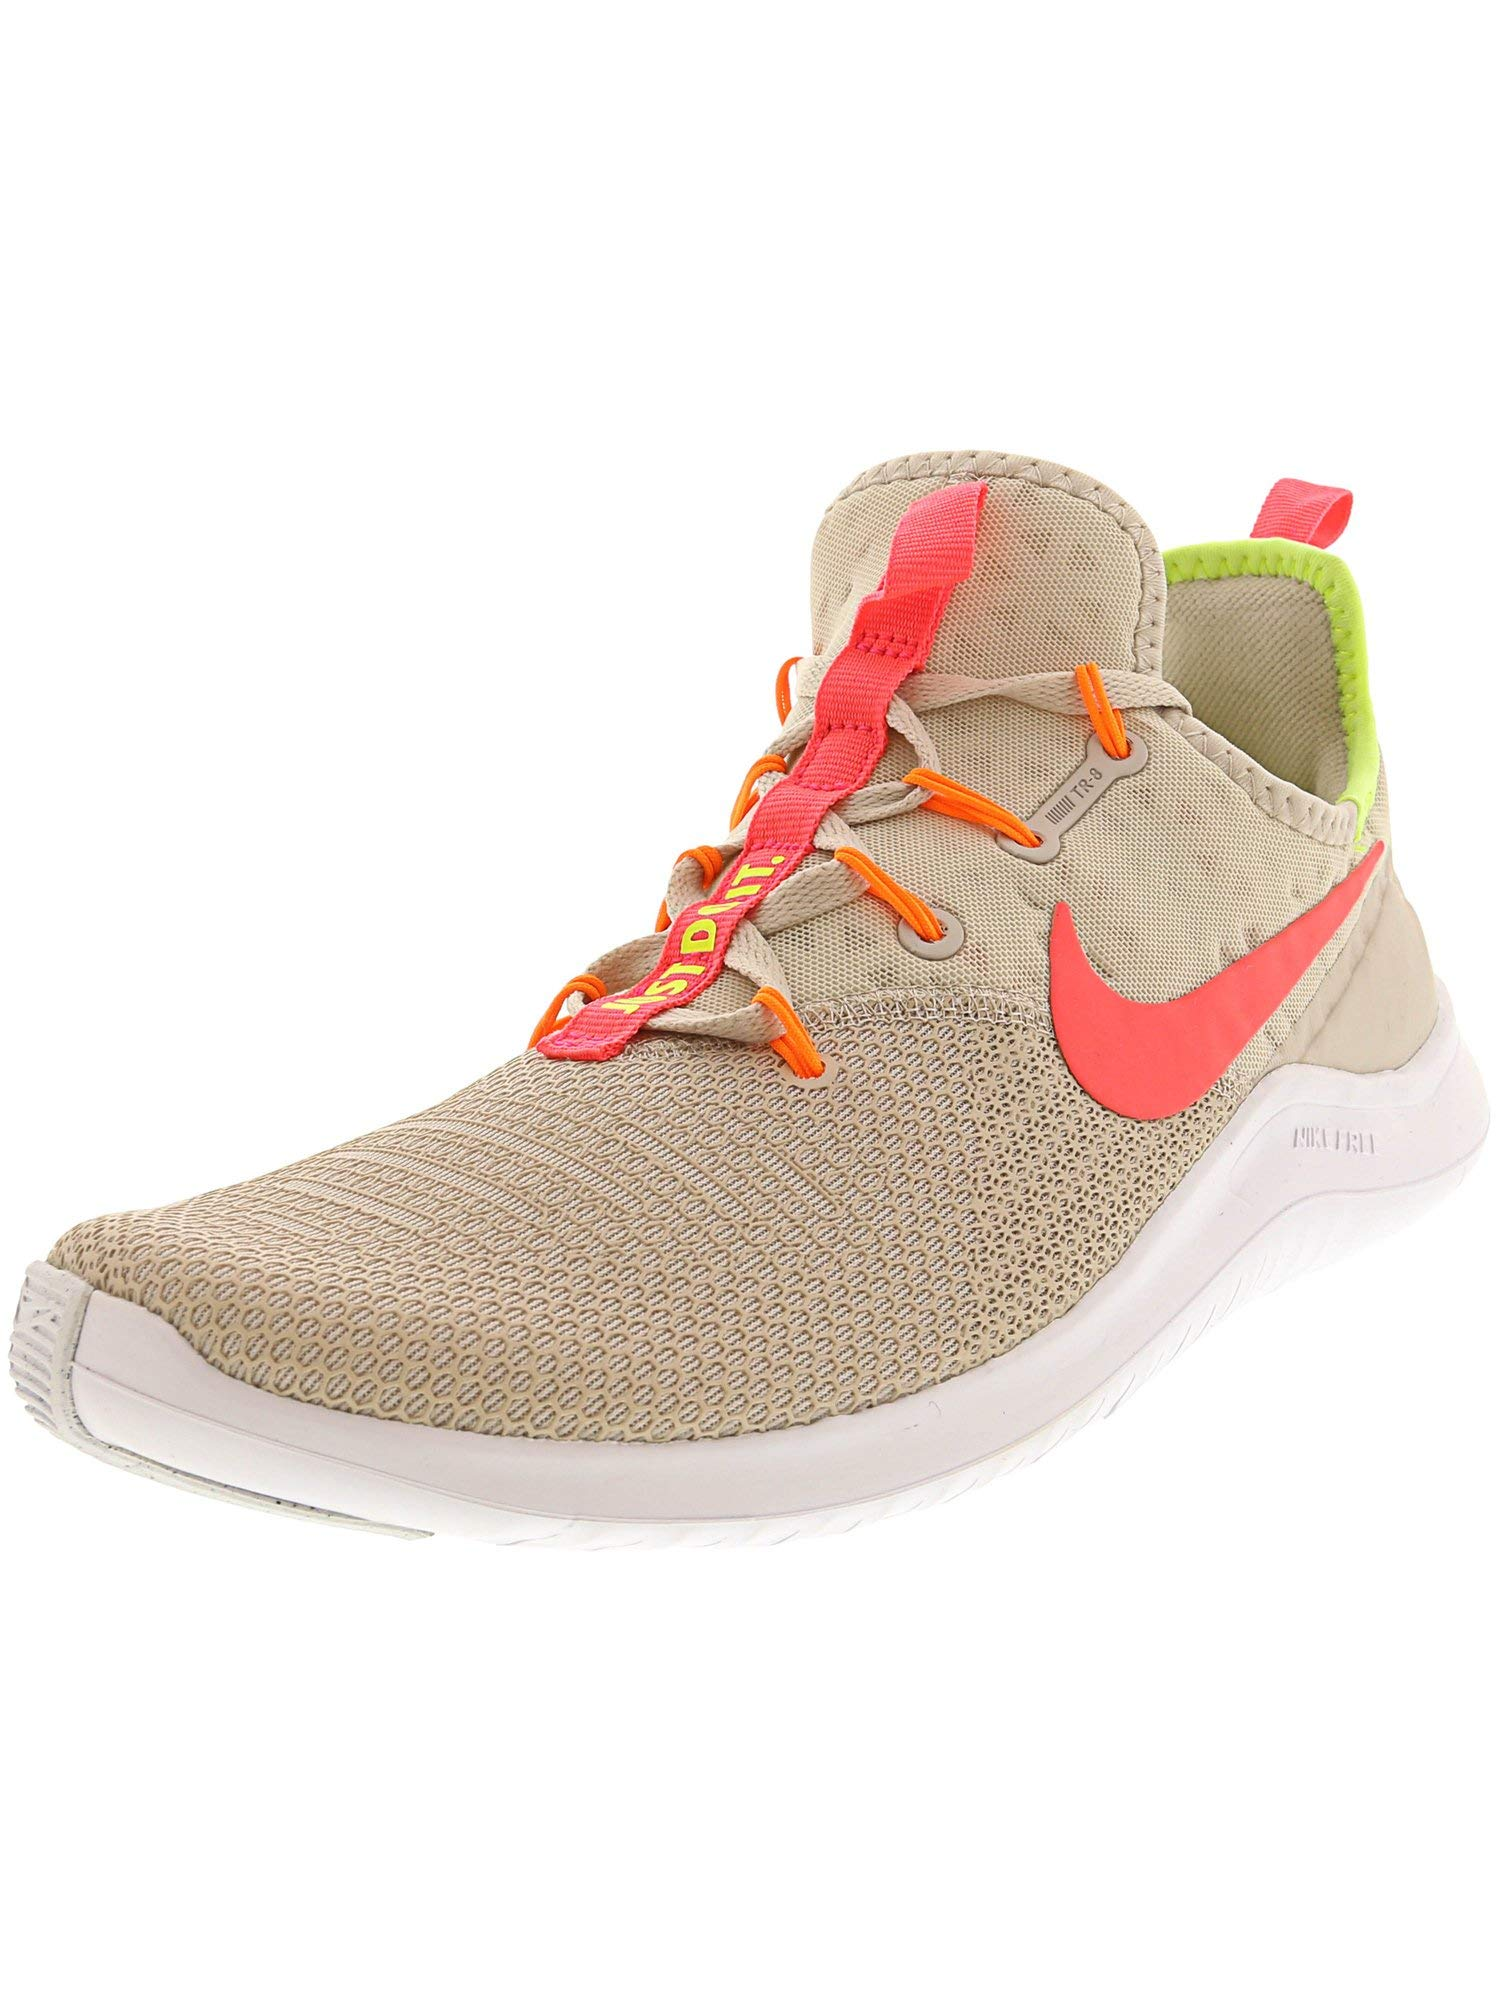 ce1bd58f9935c Galleon - Nike Free TR 8 Womens Training Shoes (7.5 B(M) US)